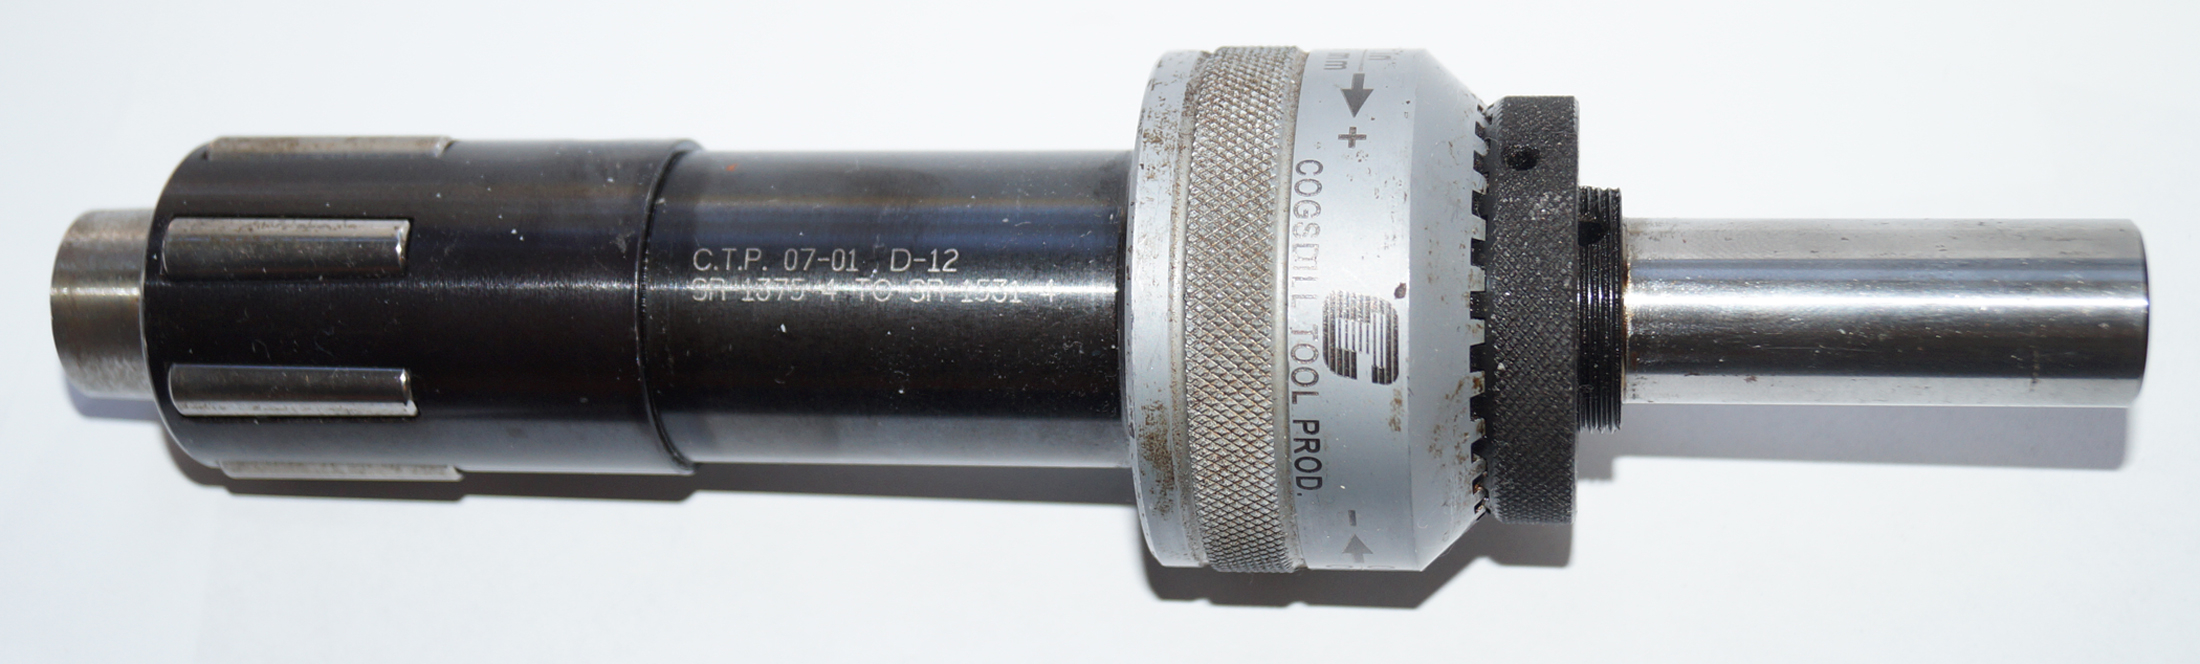 Cogsdill SR-1375 to SR-1531 Burnishing Tool D-12